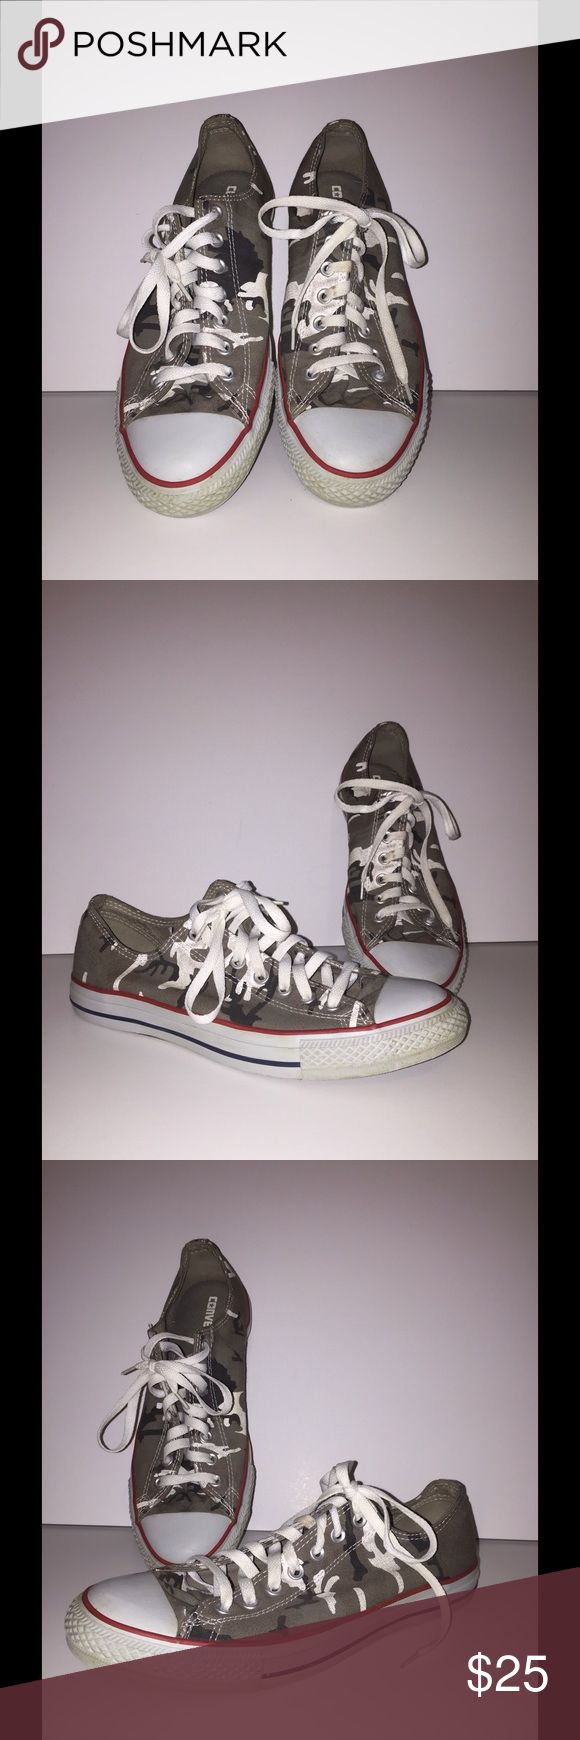 Men camo converse shoes size 10, chuck Taylor These are a pair of camo chuck Taylor, all star low shoes, size 10. The condition of the shows is worn (only a few times) however, shoes are still  in really great condition. Lots of life. Smoke/ pet free home.please email me any questions you may have. Converse Shoes Athletic Shoes